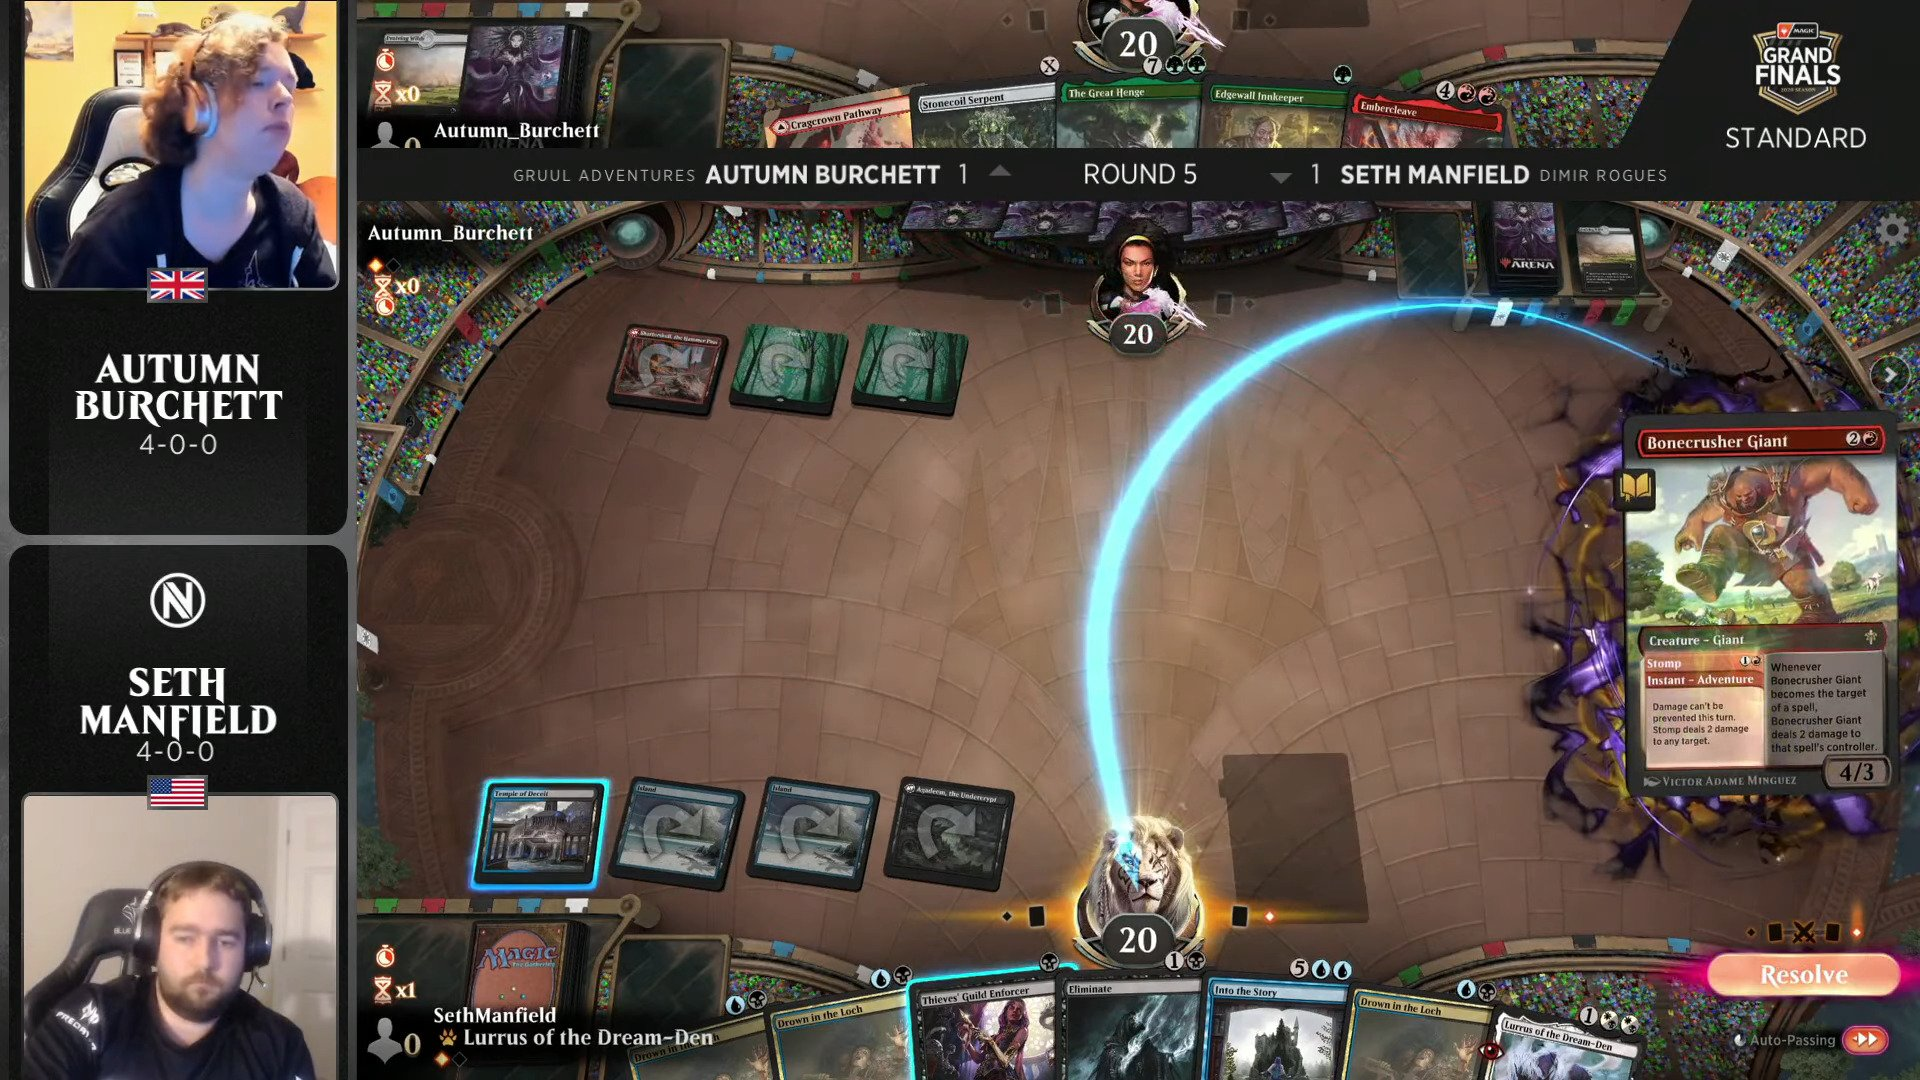 Magic: The Gathering 2020 Grand Finals Is Down To Top 8, Omnath Decks Dominate